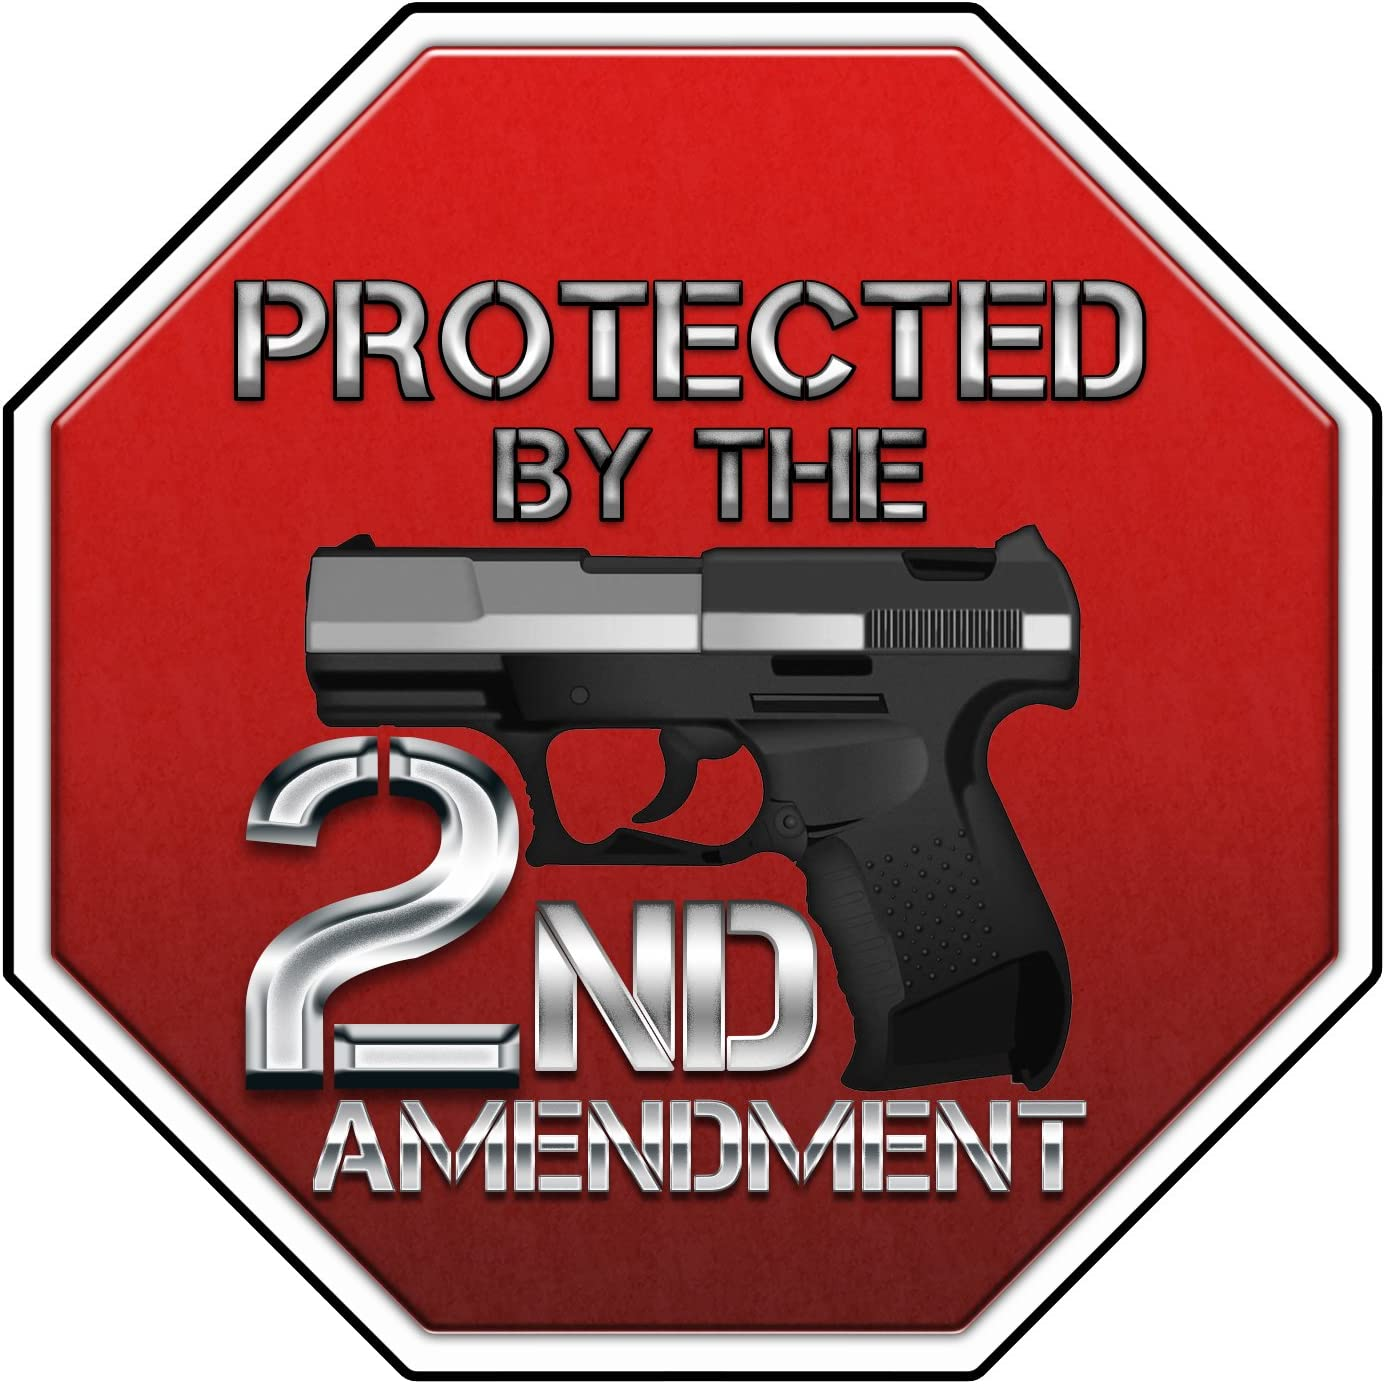 Bargain Max Decals Protected by 2nd Amendment Security Gun Window Laptop Car Sticker 6""